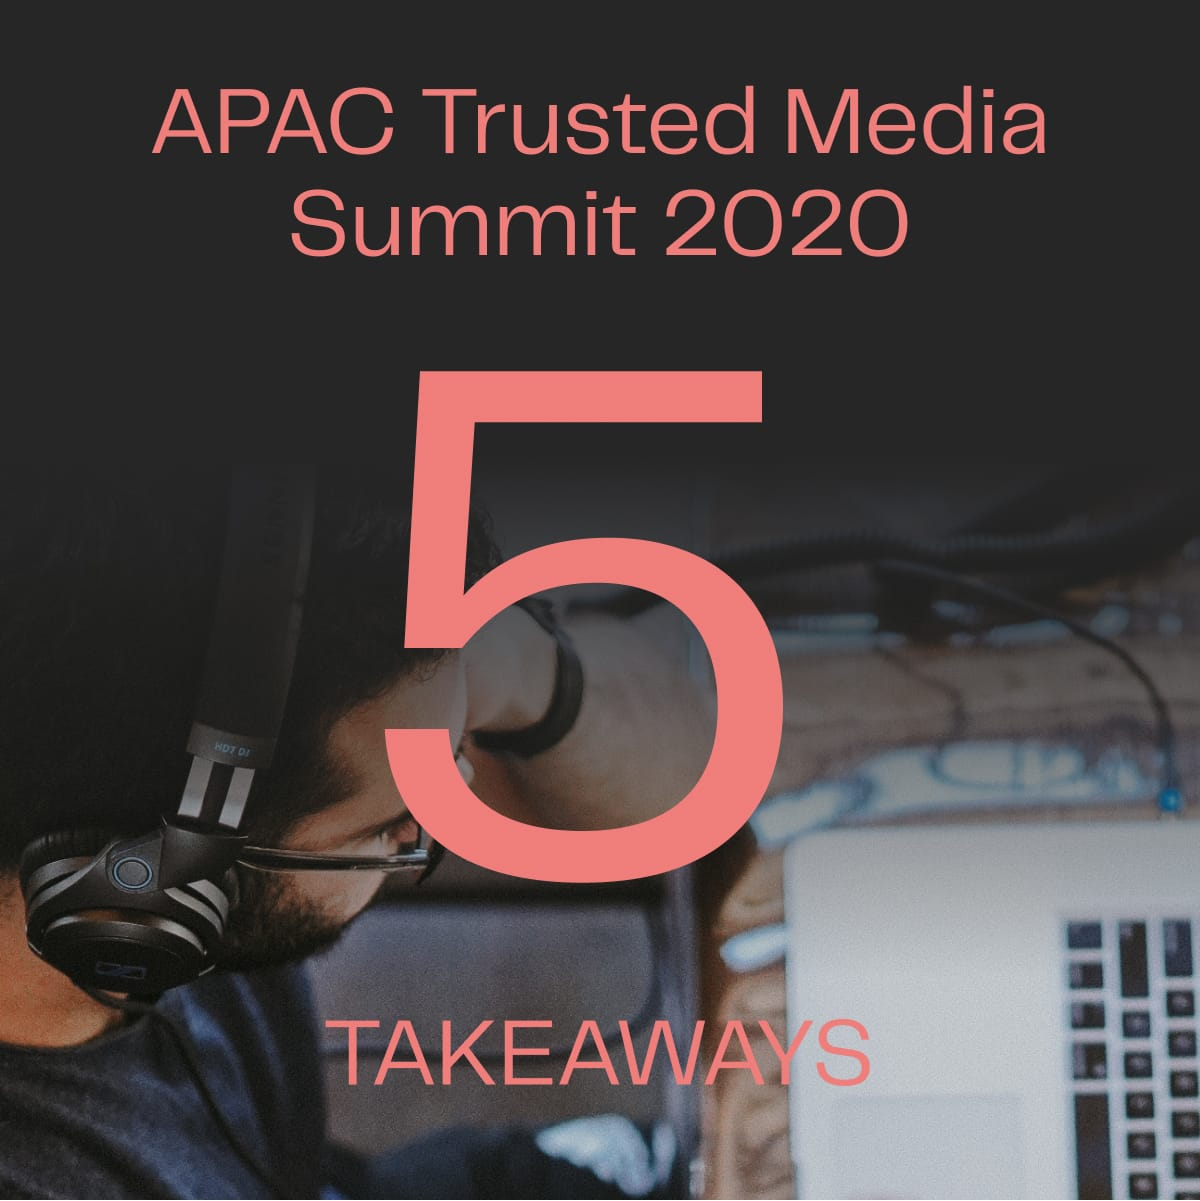 APAC Trusted media summit